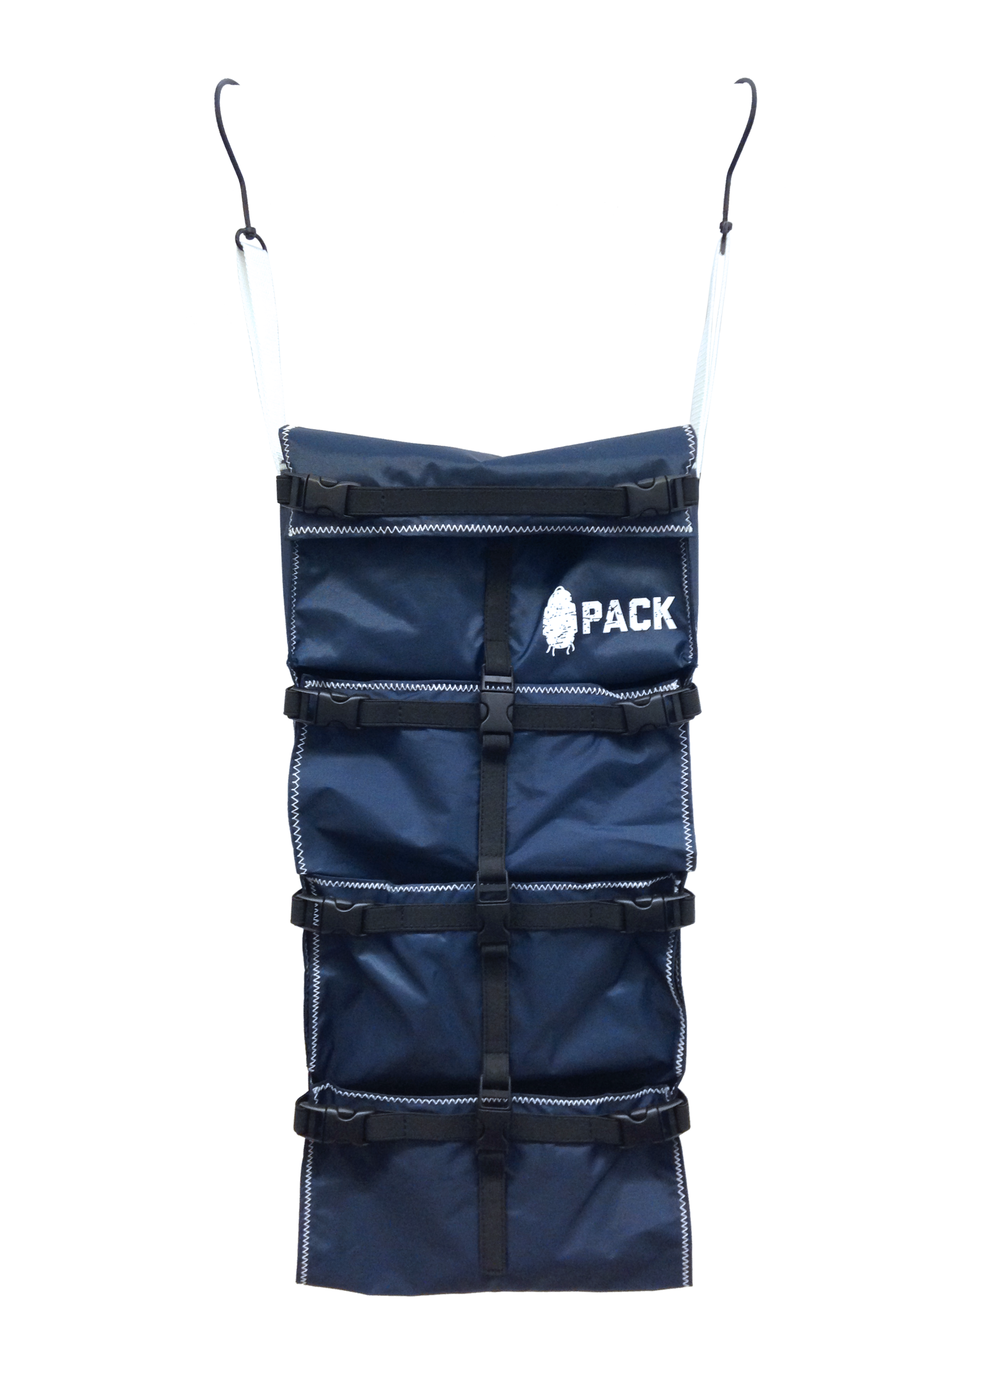 Our First Product - The P.A.C.K